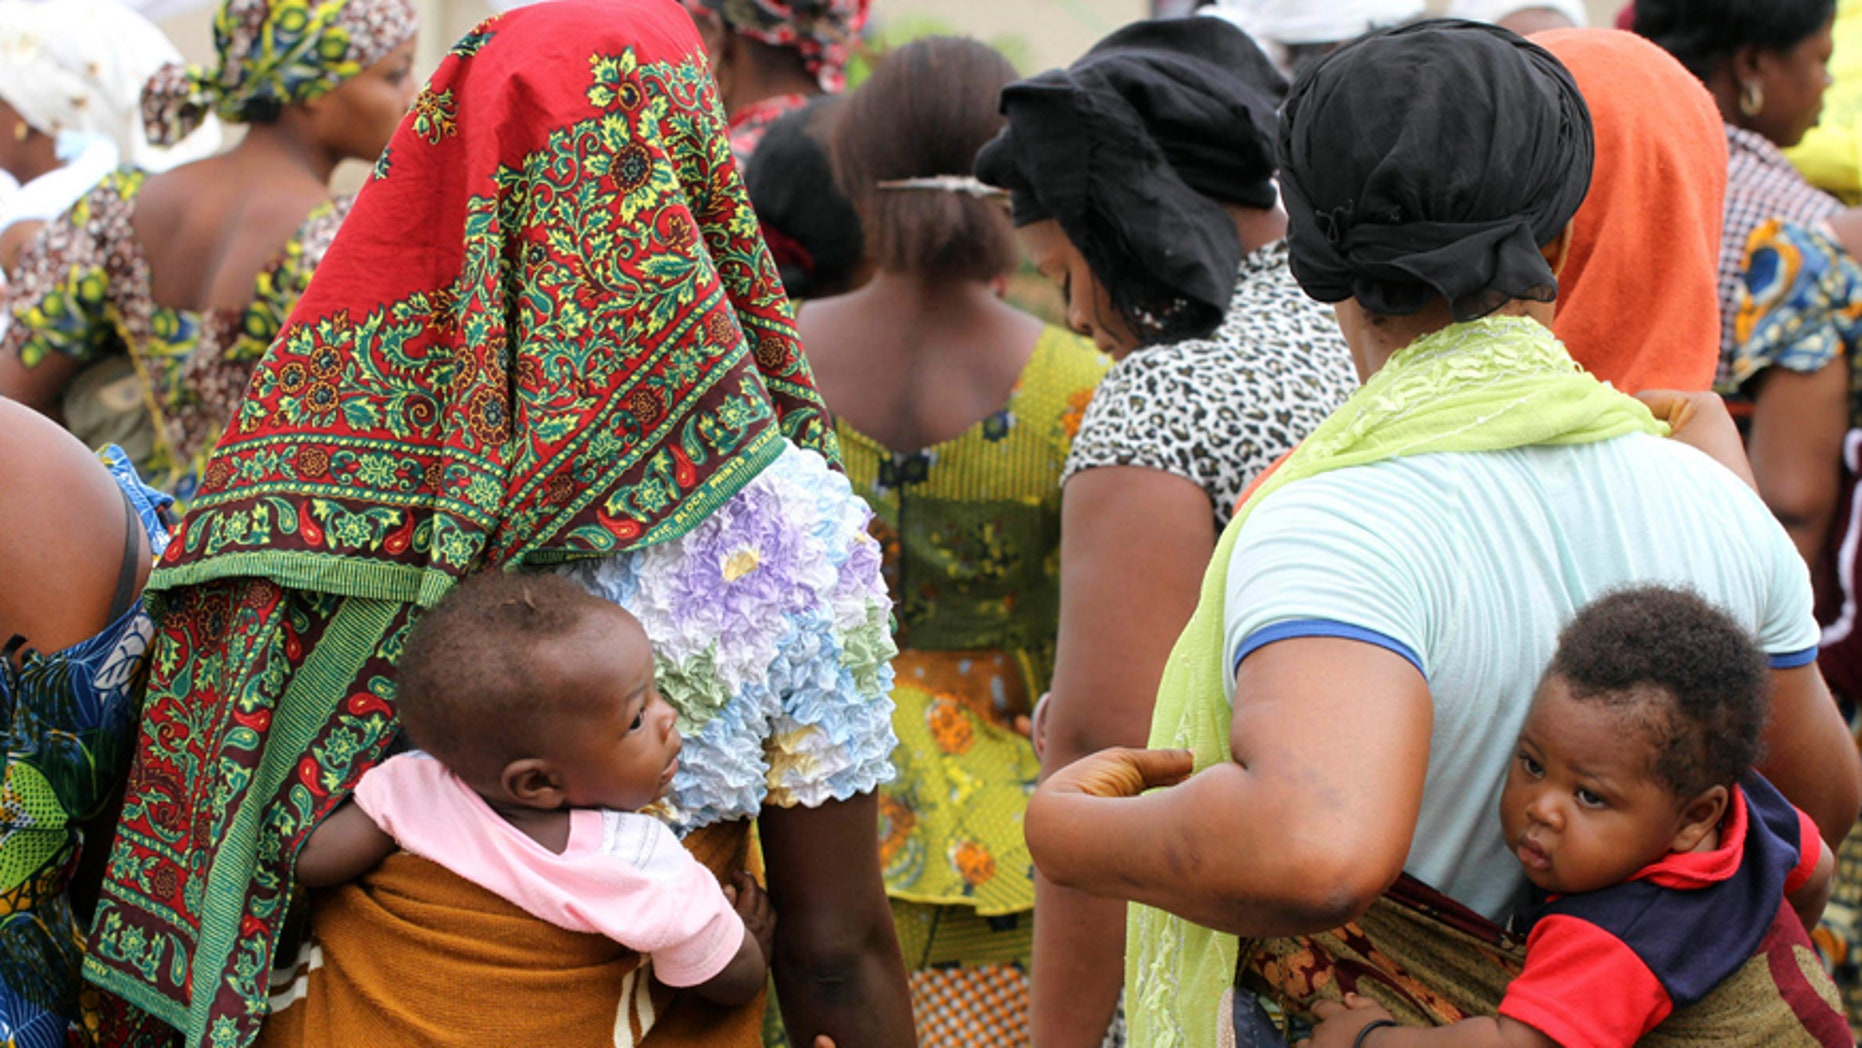 Women carry their children wait for the arrival of U.N. Secretary General Ban Ki-moon for the unveiling of a primary health care clinic in Dutse Makaranta village, on the outskirt of Nigeria's capital, Abuja May 23, 2011. REUTERS/Akintunde Akinleye(NIGERIA - Tags: POLITICS HEALTH) - RTR2MSO1